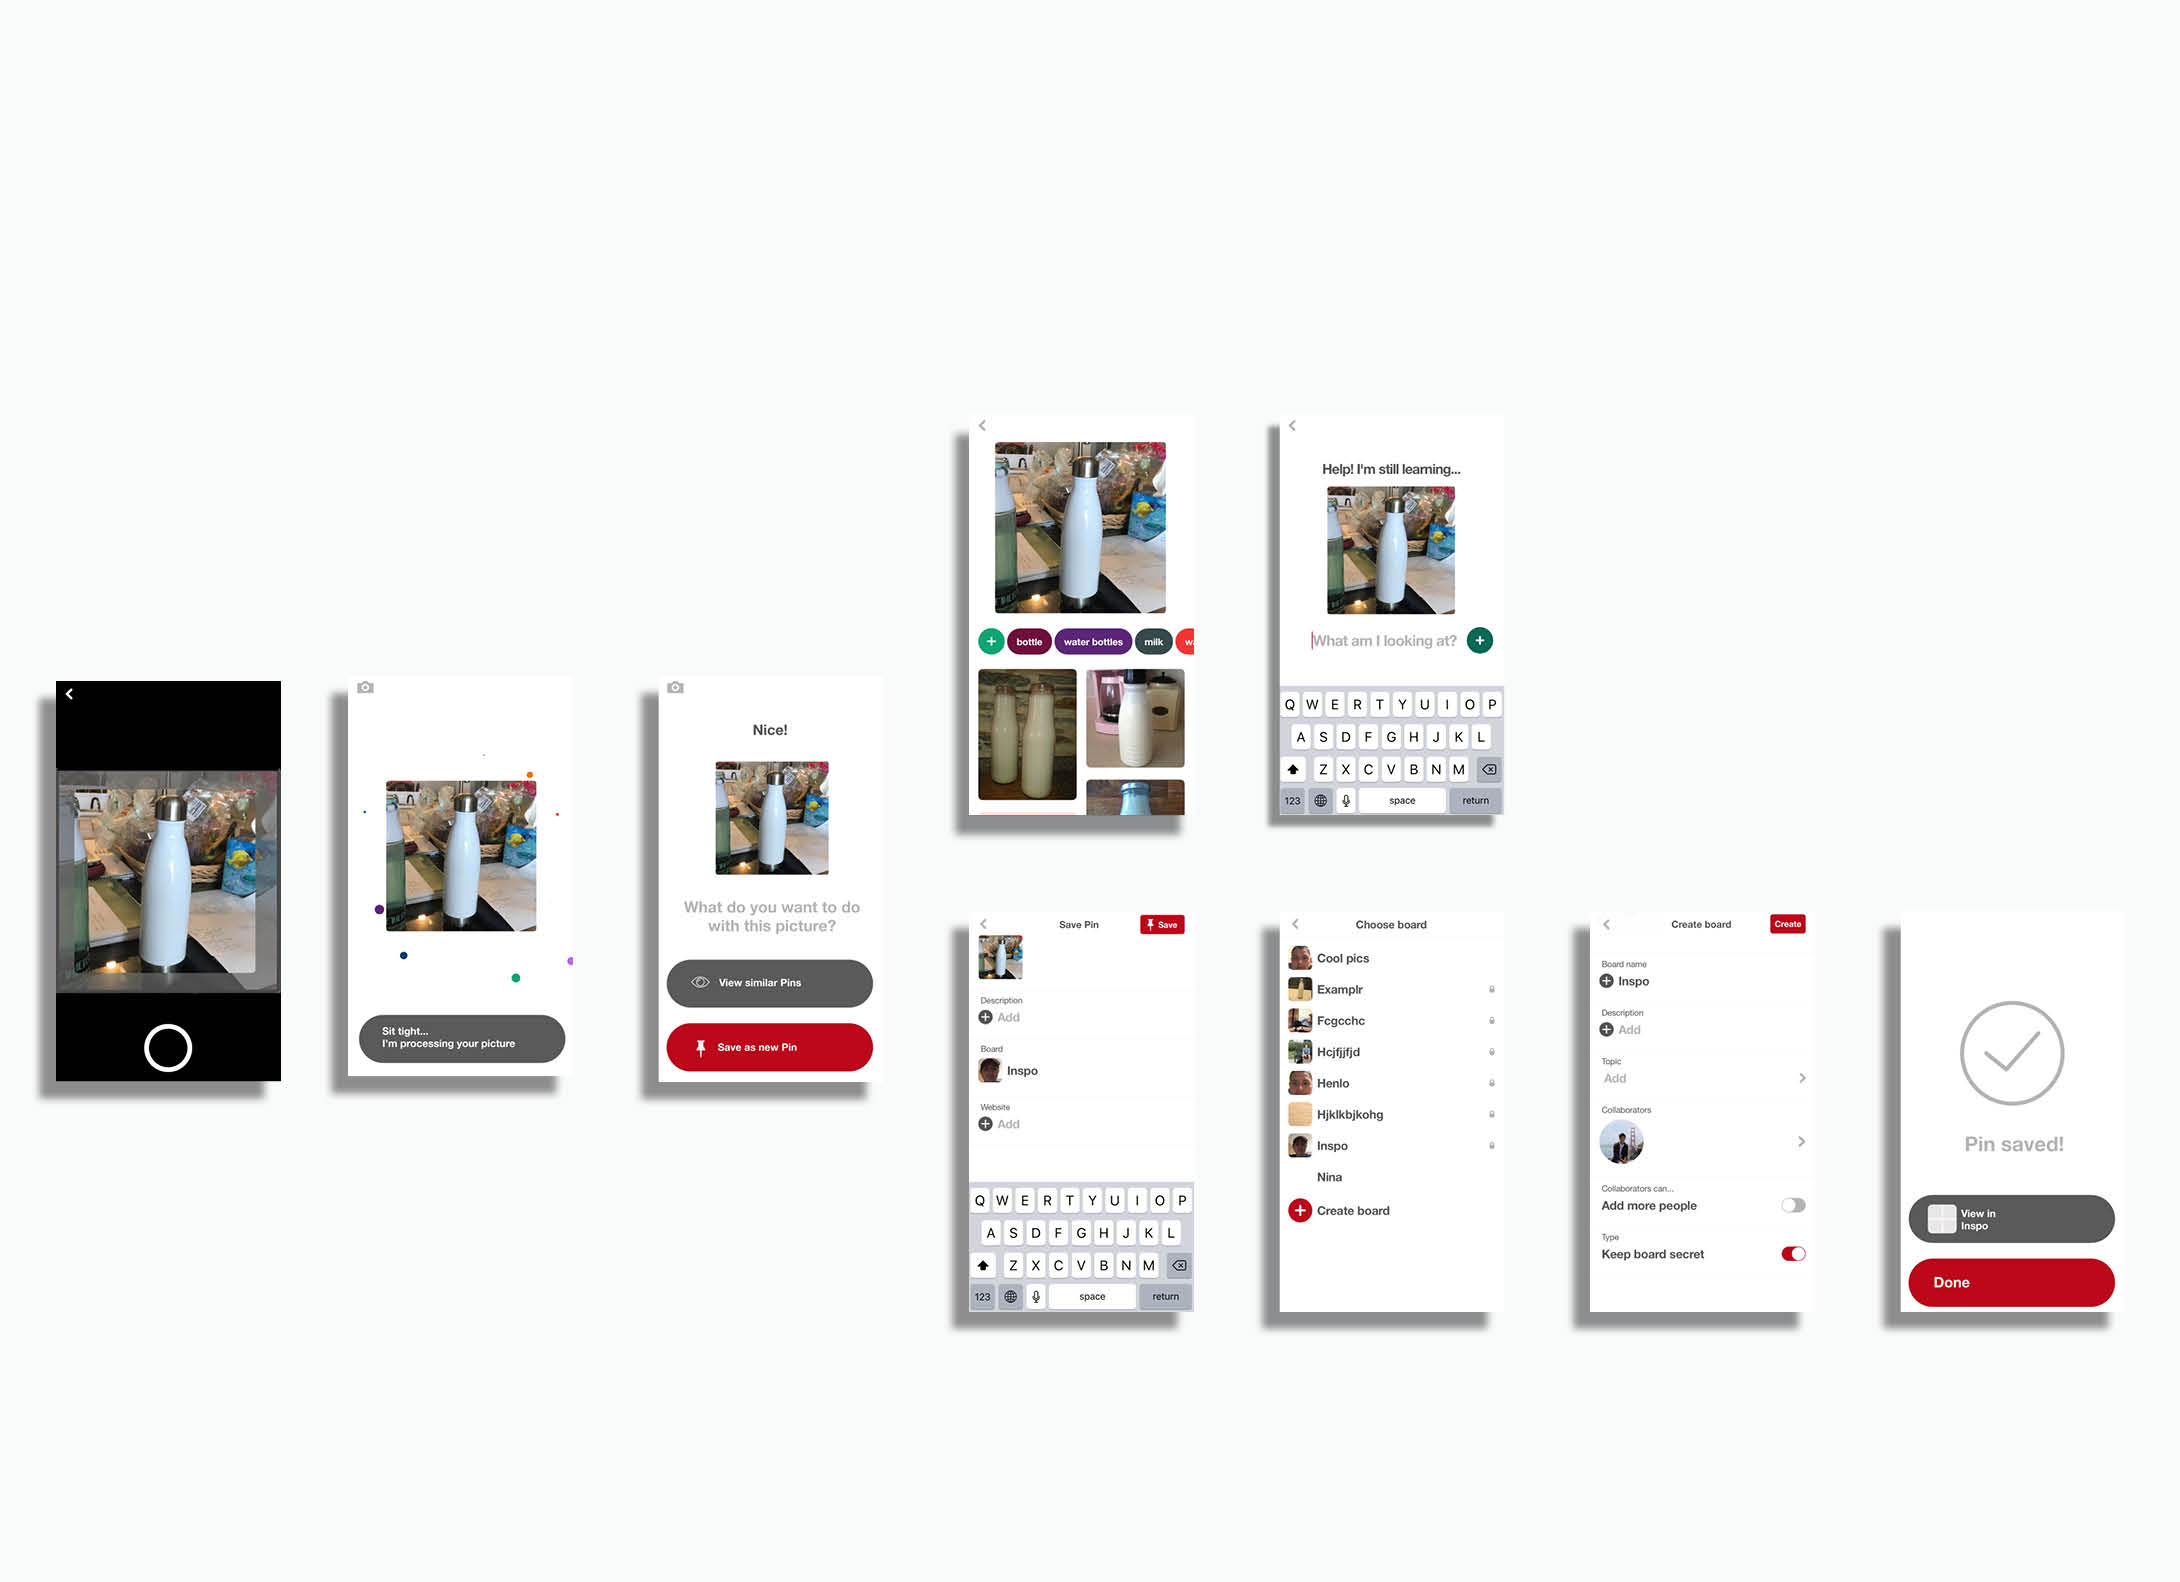 pinterest_redesign_layout.jpg